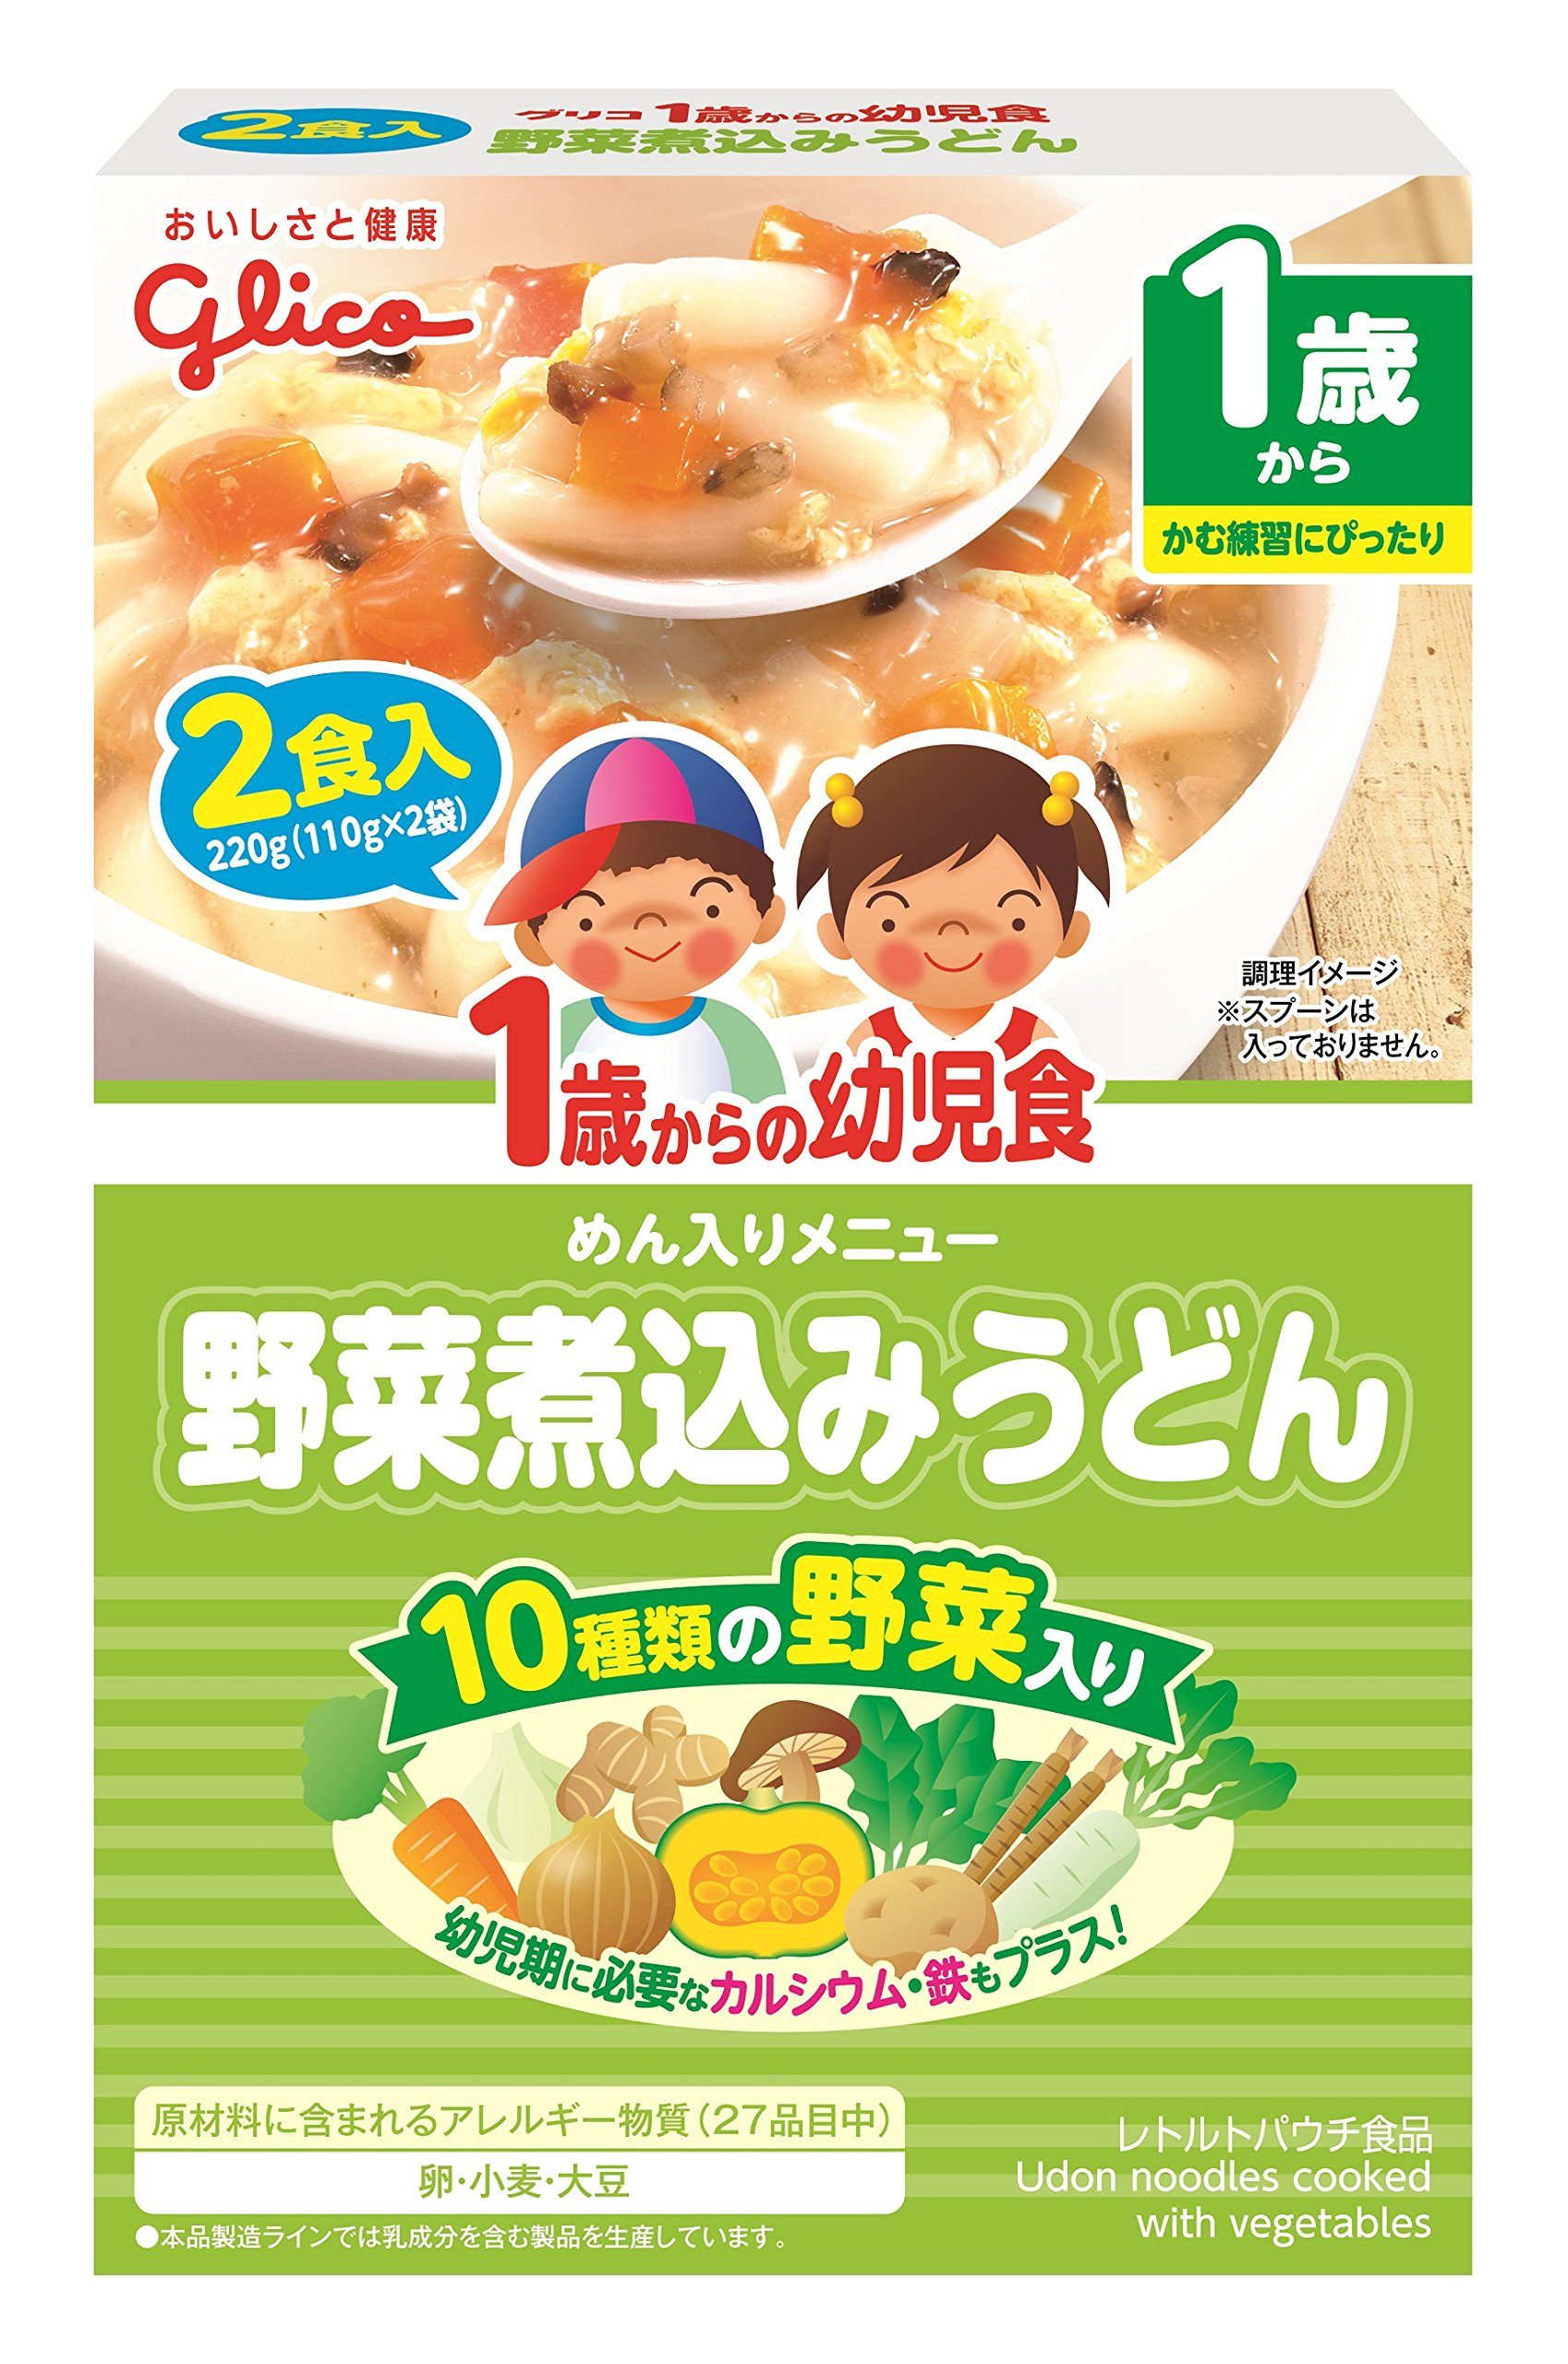 2 Kuii X5 or infant food vegetable stew noodles from 1-year-old Glico by Aikureo